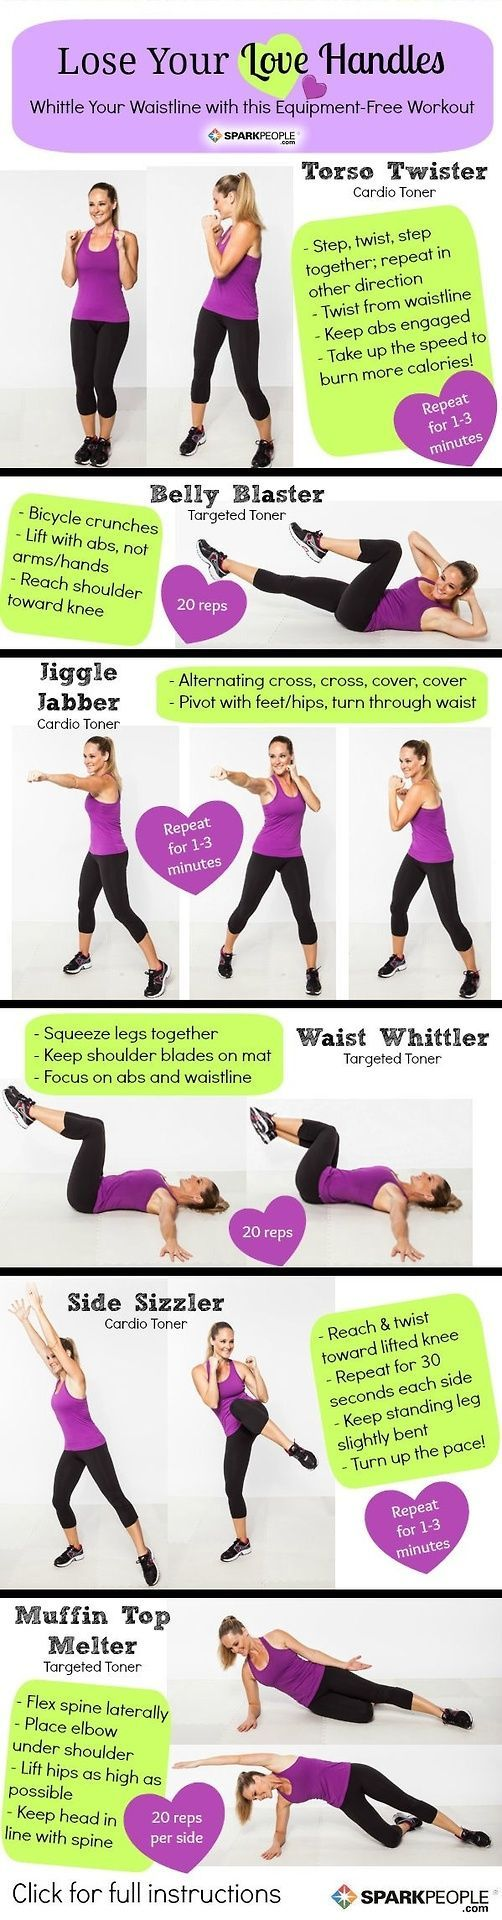 Lose Your Love Handle Well done Fitness Health